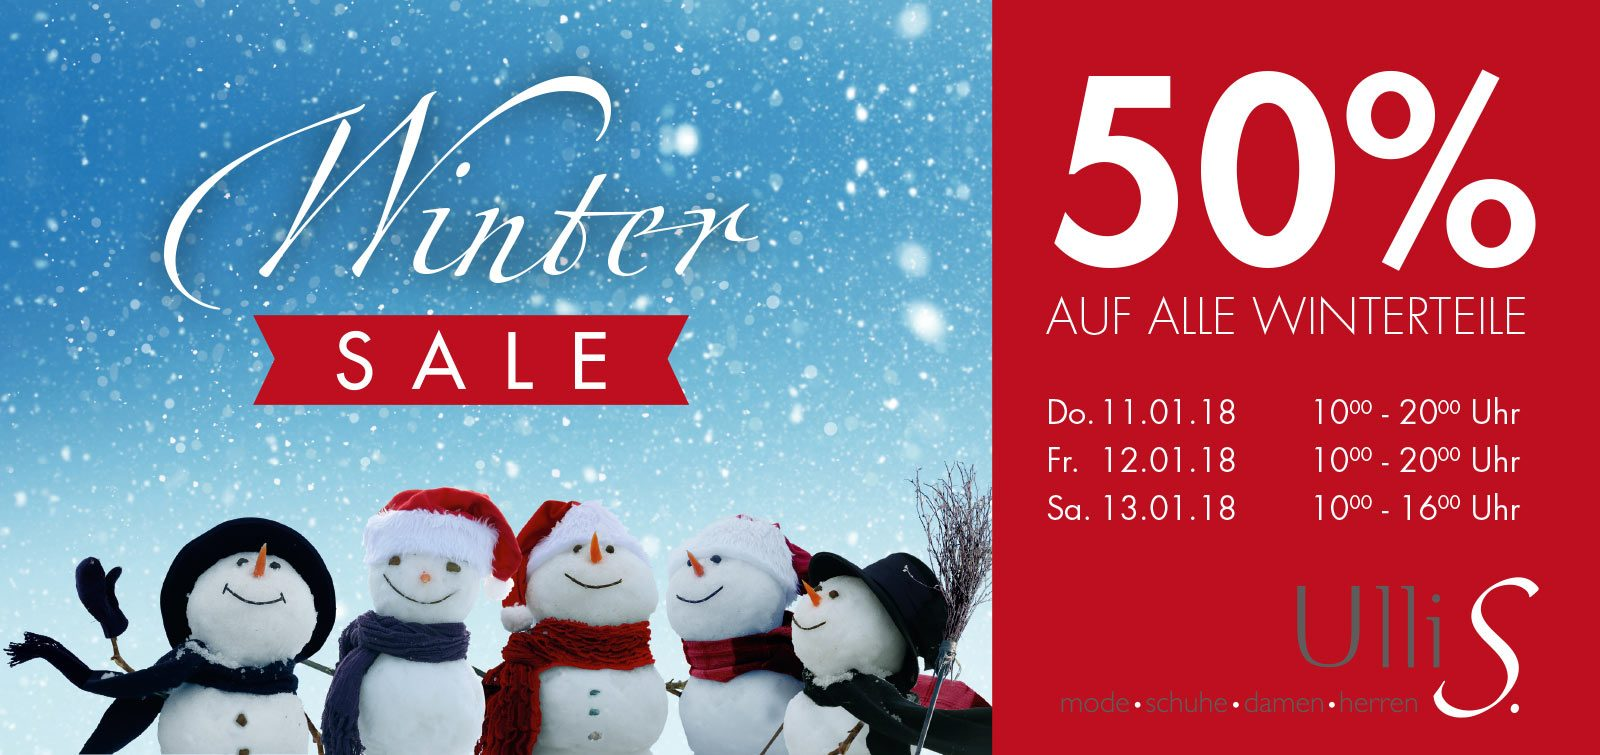 Winter Sale bei Ulli S. in Bad Säckingen | 50% Rabatt auf die gesamte Winter-Kollektion